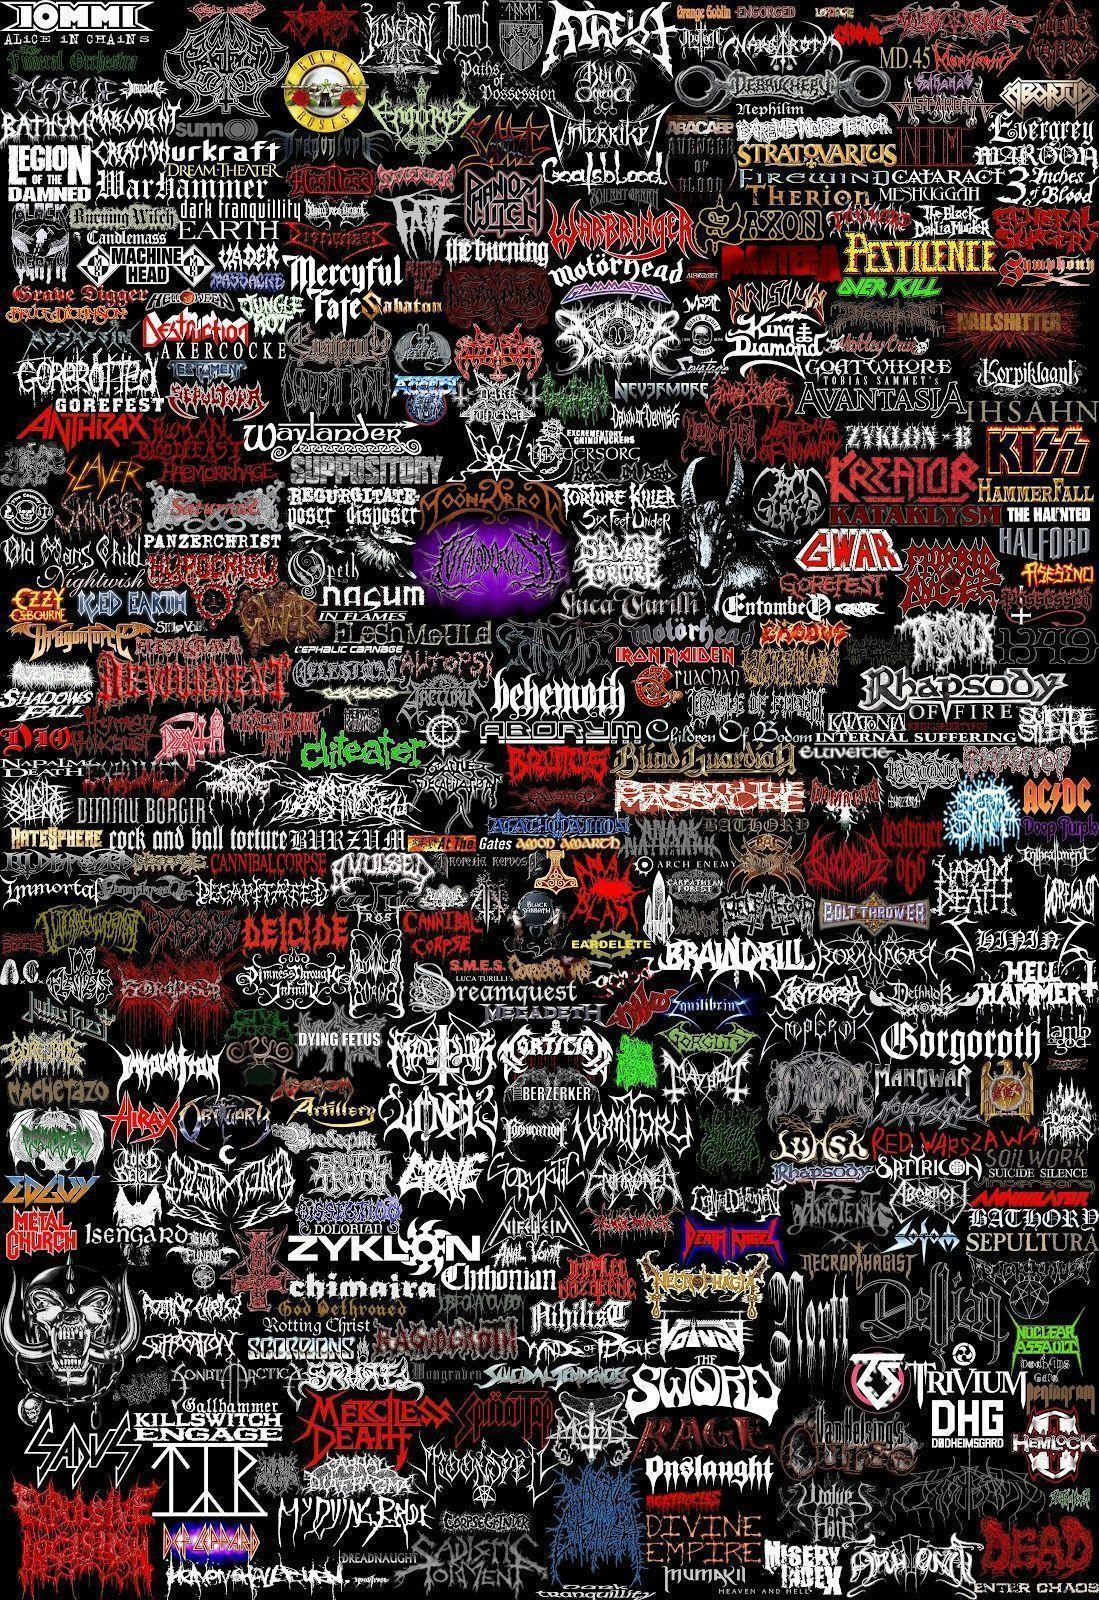 Metal Band Logo Hd Quality Wallpapers